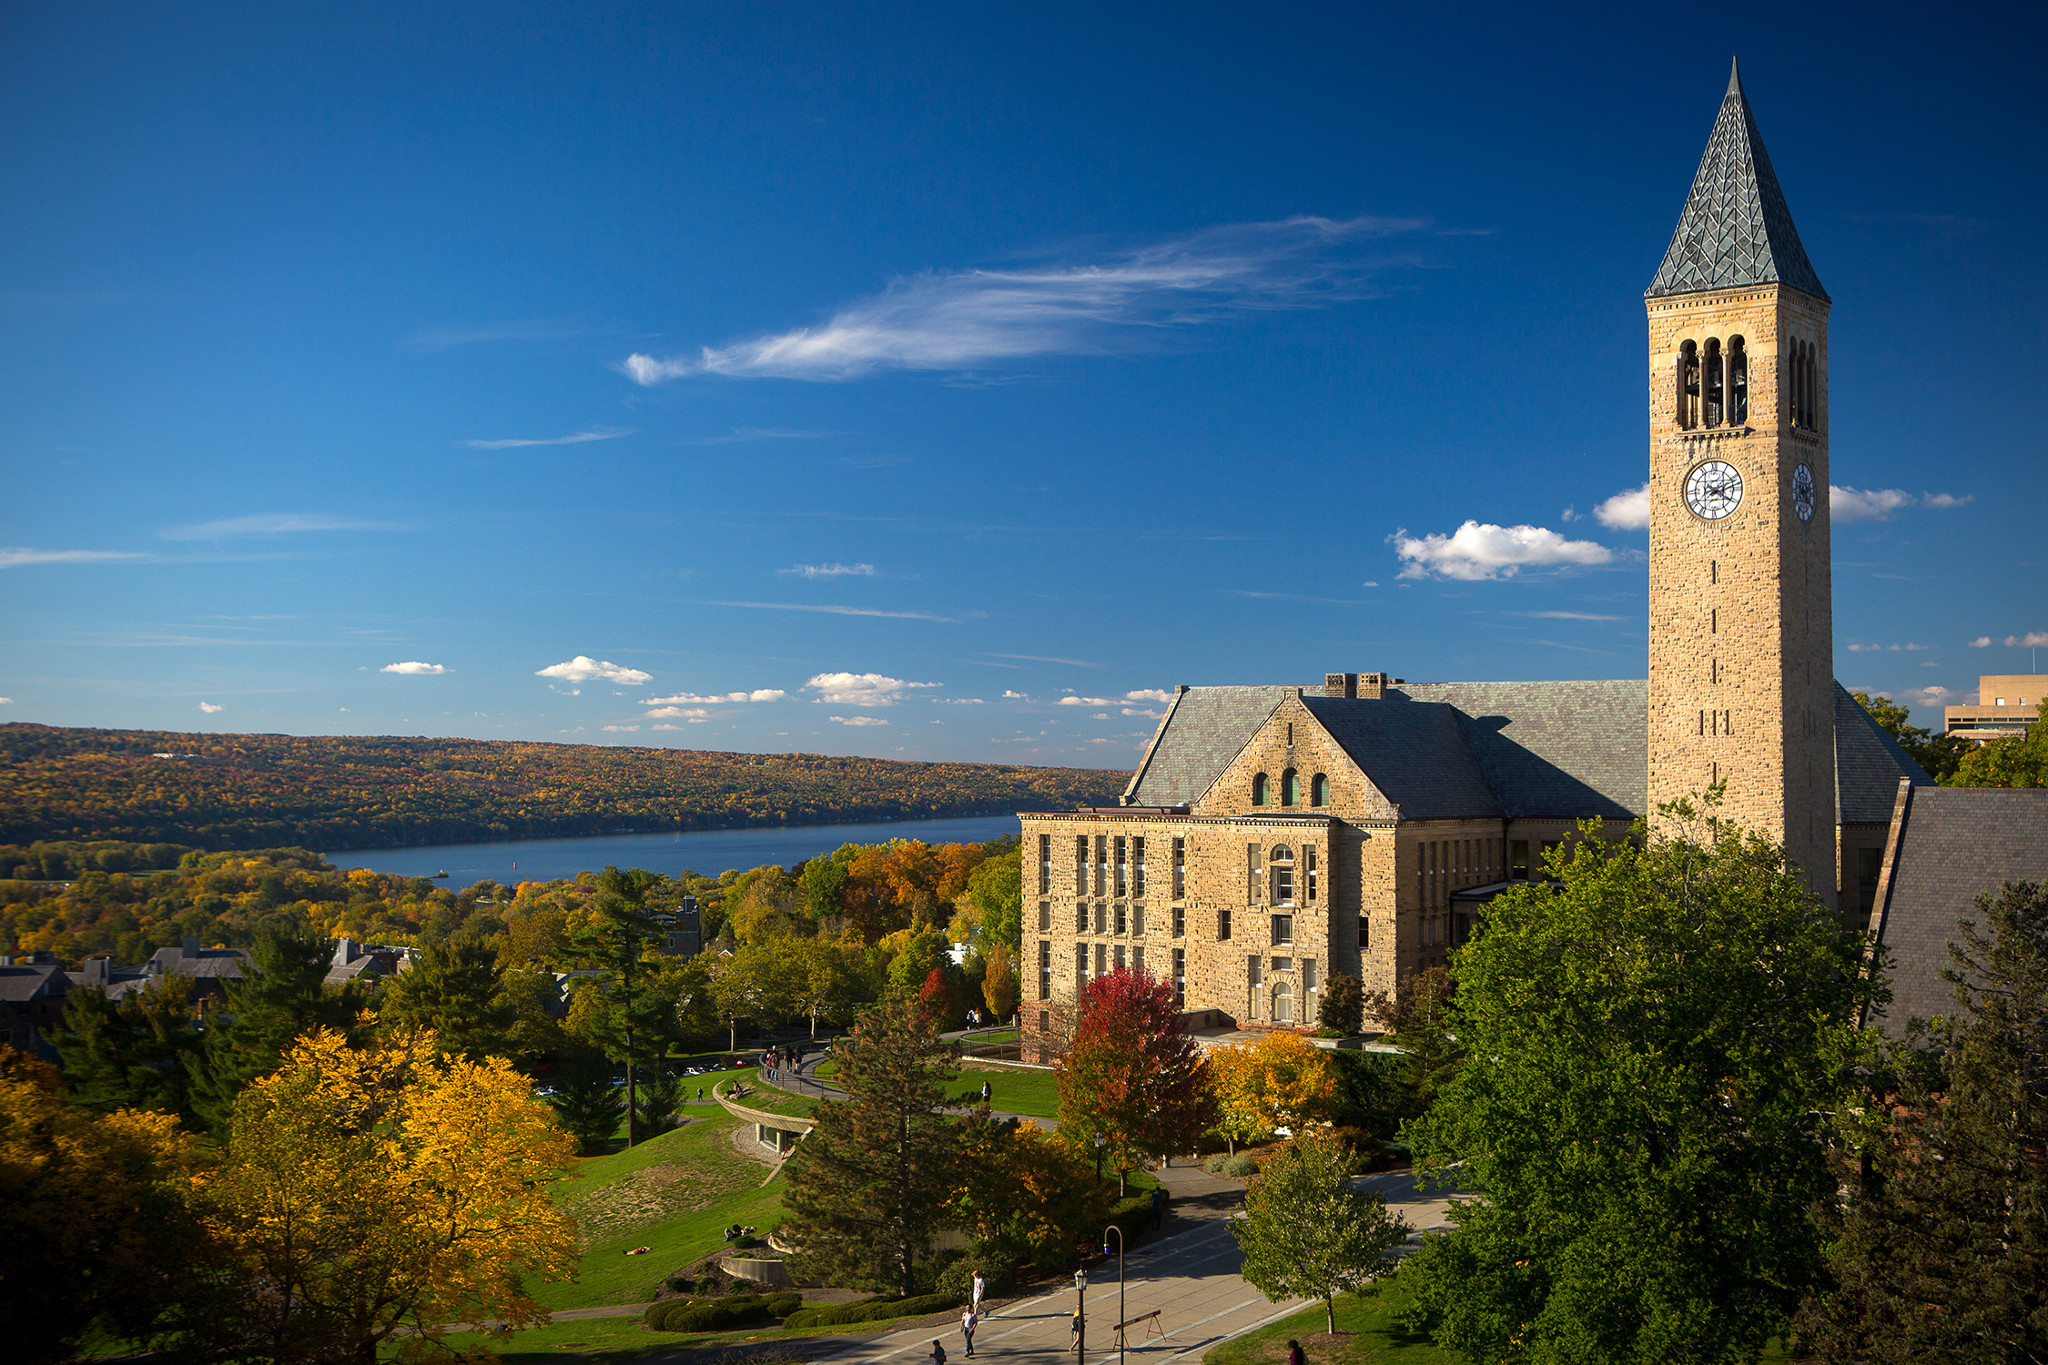 McGraw Tower, Uris Library, Ho Plaza, and Cayuga Lake in fall.